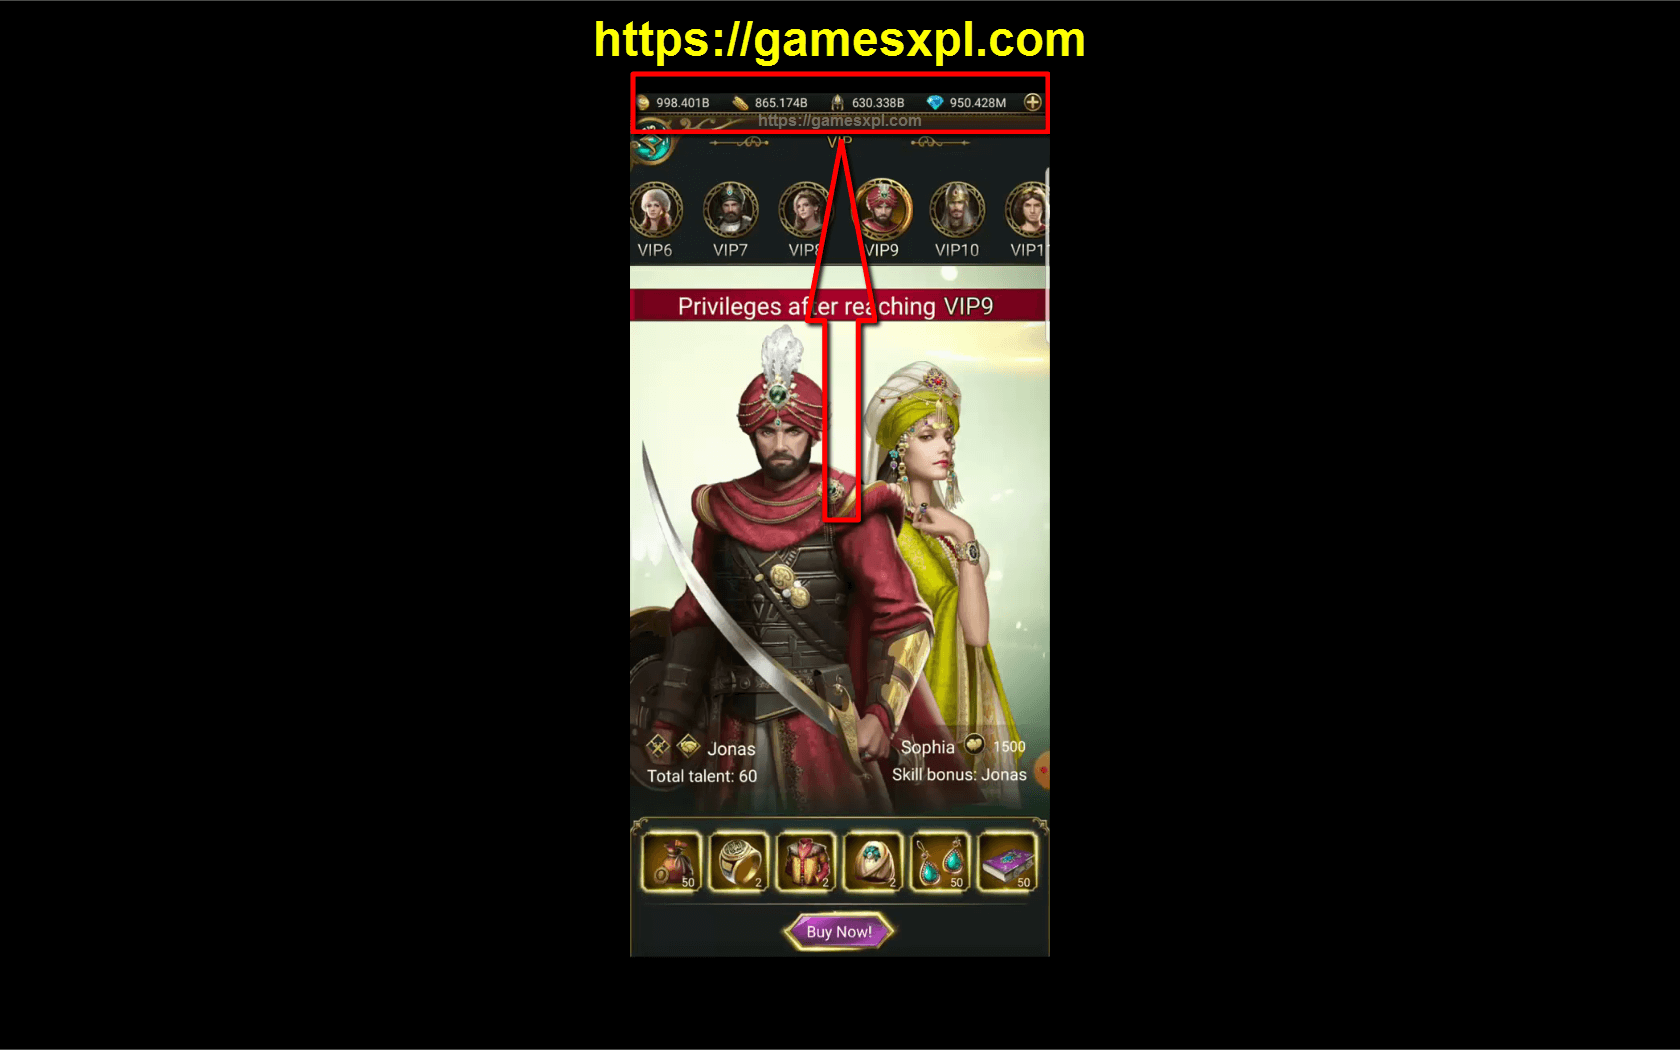 Game of Sultans Hack Mod Apk – How to Get Unlimited Diamonds – iOS, Android, Windows